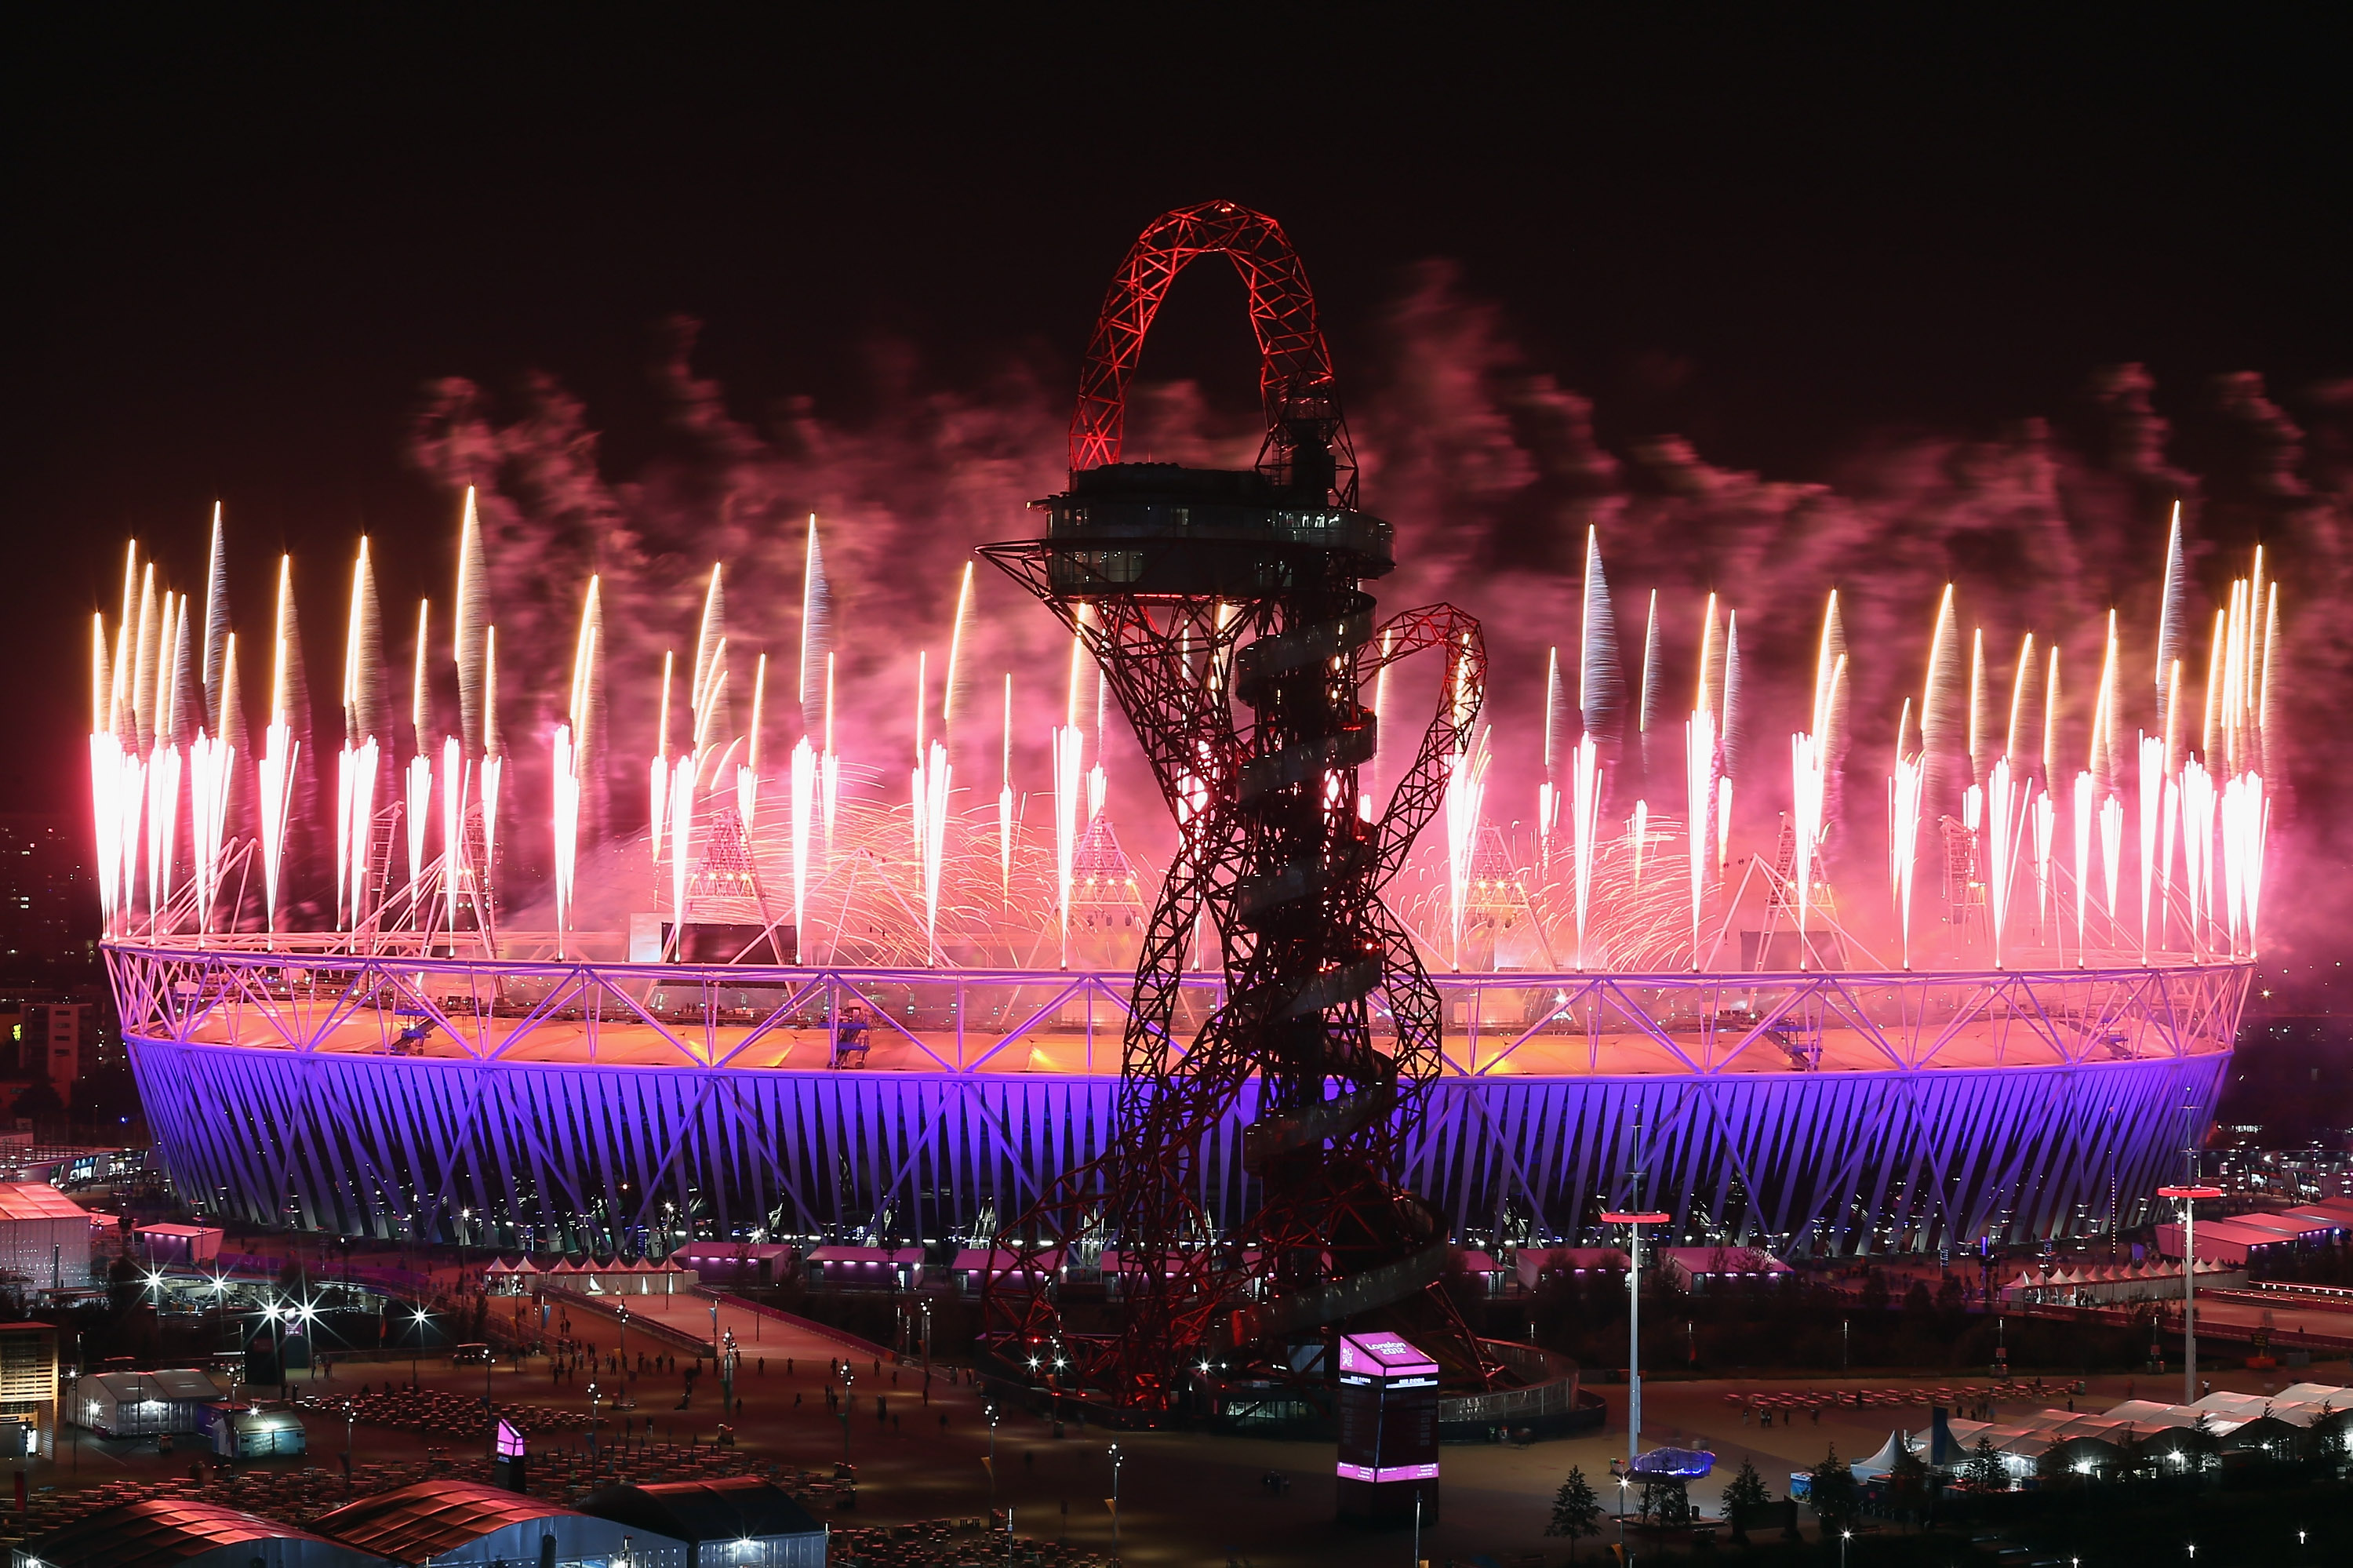 LONDON, ENGLAND - SEPTEMBER 09:  Fireworks illuminate the sky above the Olympic Park during the Closing Ceremony of the London 2012 Paralympic Games at Olympic Stadium on September 9, 2012 in London, England.  (Photo by Dan Kitwood/Getty Images)